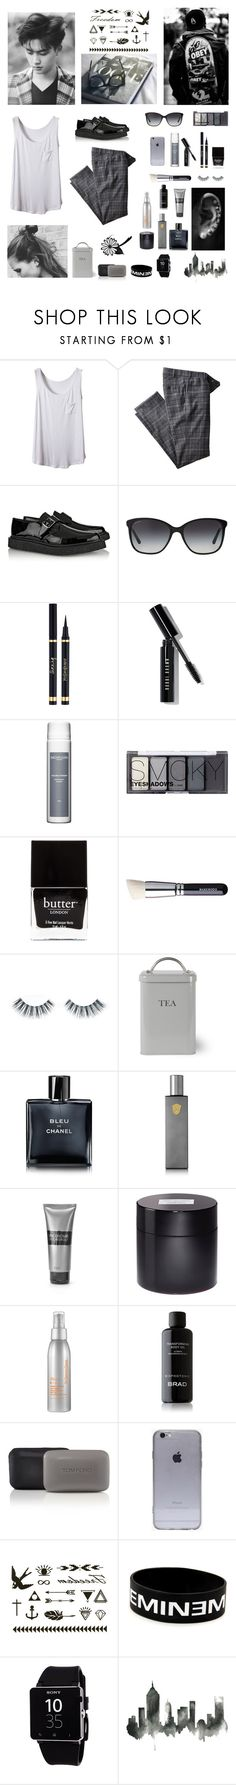 """""""""""You smile back in our pictures, unknowing of our approaching farewell"""" (Taeyang)"""" by happine-ss ❤ liked on Polyvore featuring mode, Hiltl, Yves Saint Laurent, Bulgari, Bobbi Brown Cosmetics, Sachajuan, H&M, Butter London, Napoleon Perdis en Garden Trading"""